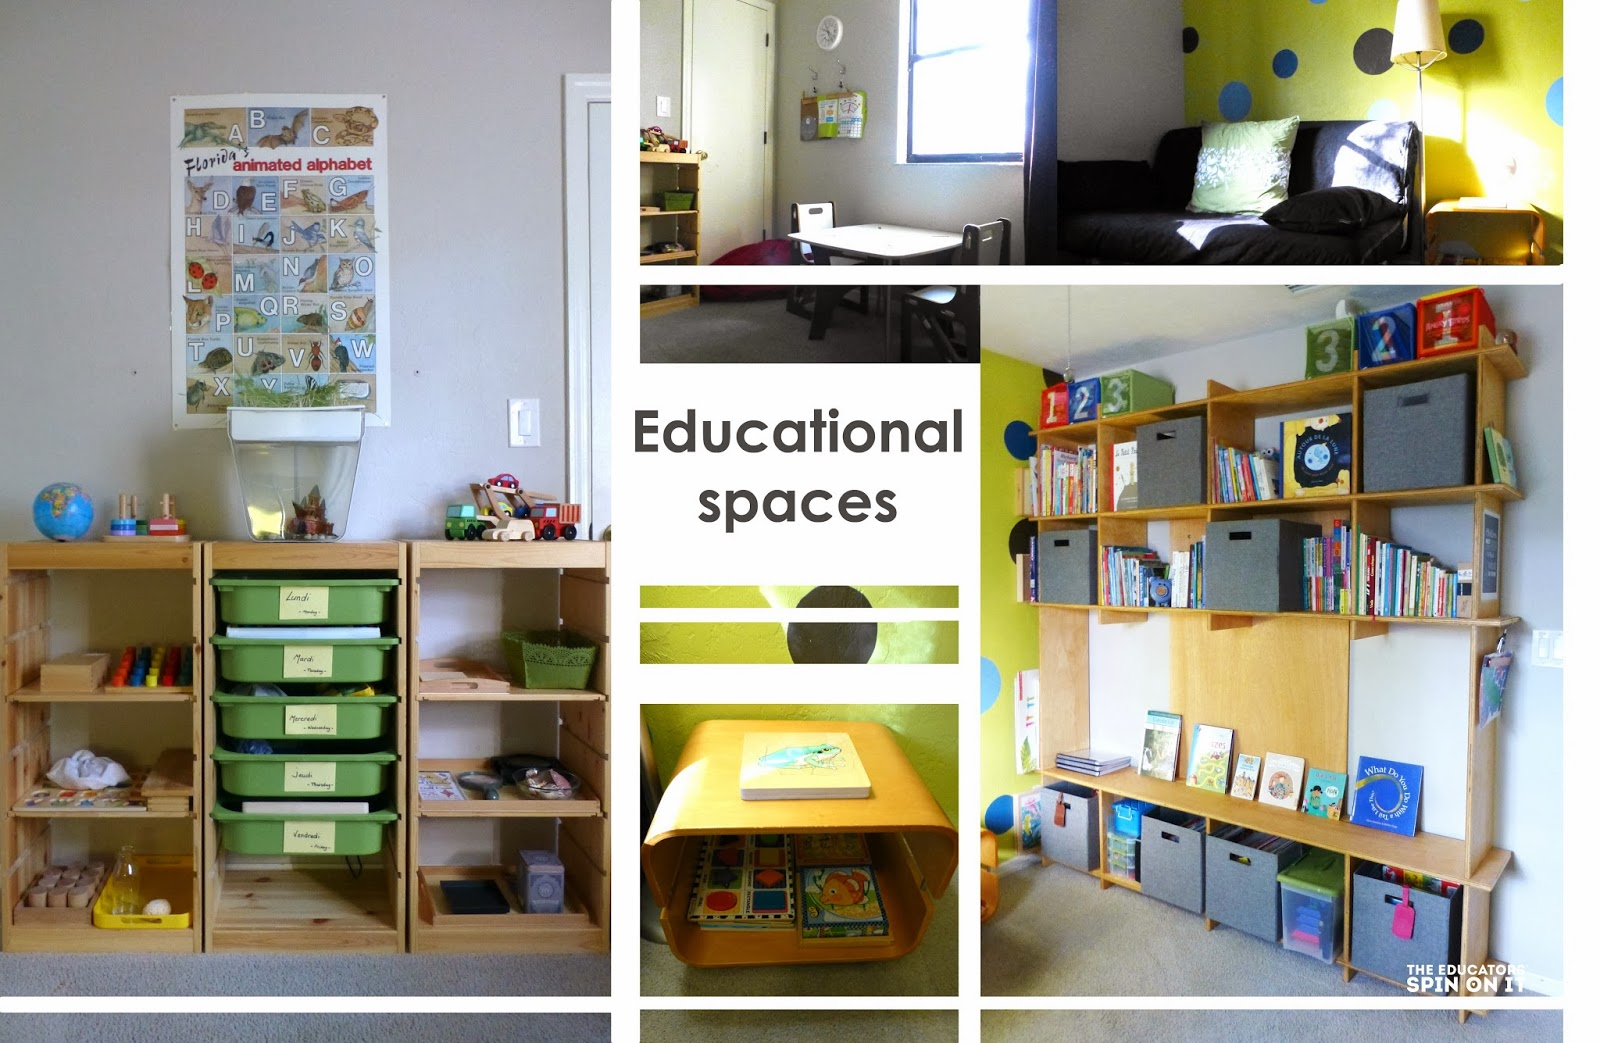 Educational Learning Space for Young Children